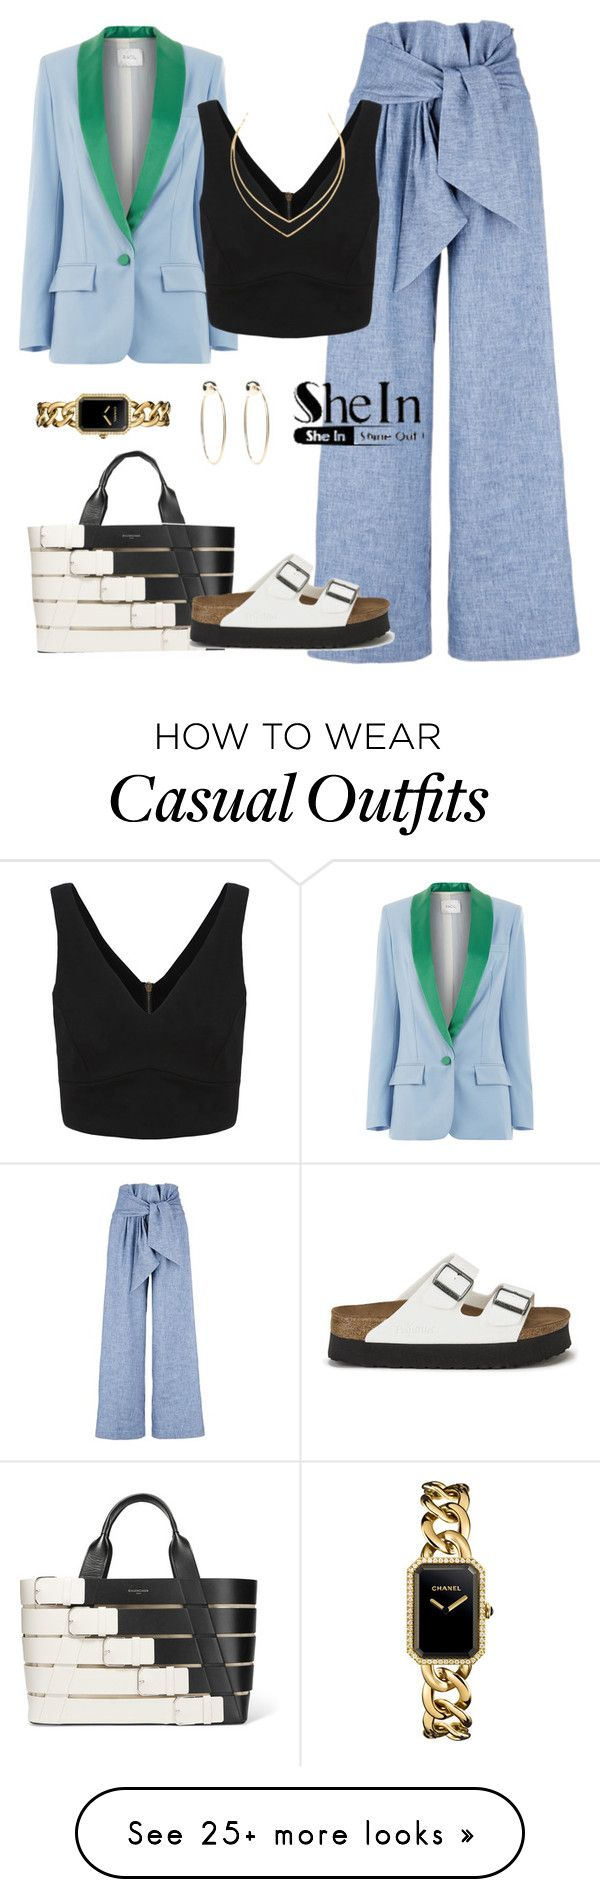 """Casual"" by yinggao on Polyvore featuring Racil, MSGM, Balenciaga, Birkenstock, Bebe, Chanel, Lana, Sheinside, casualoutfit and shein"